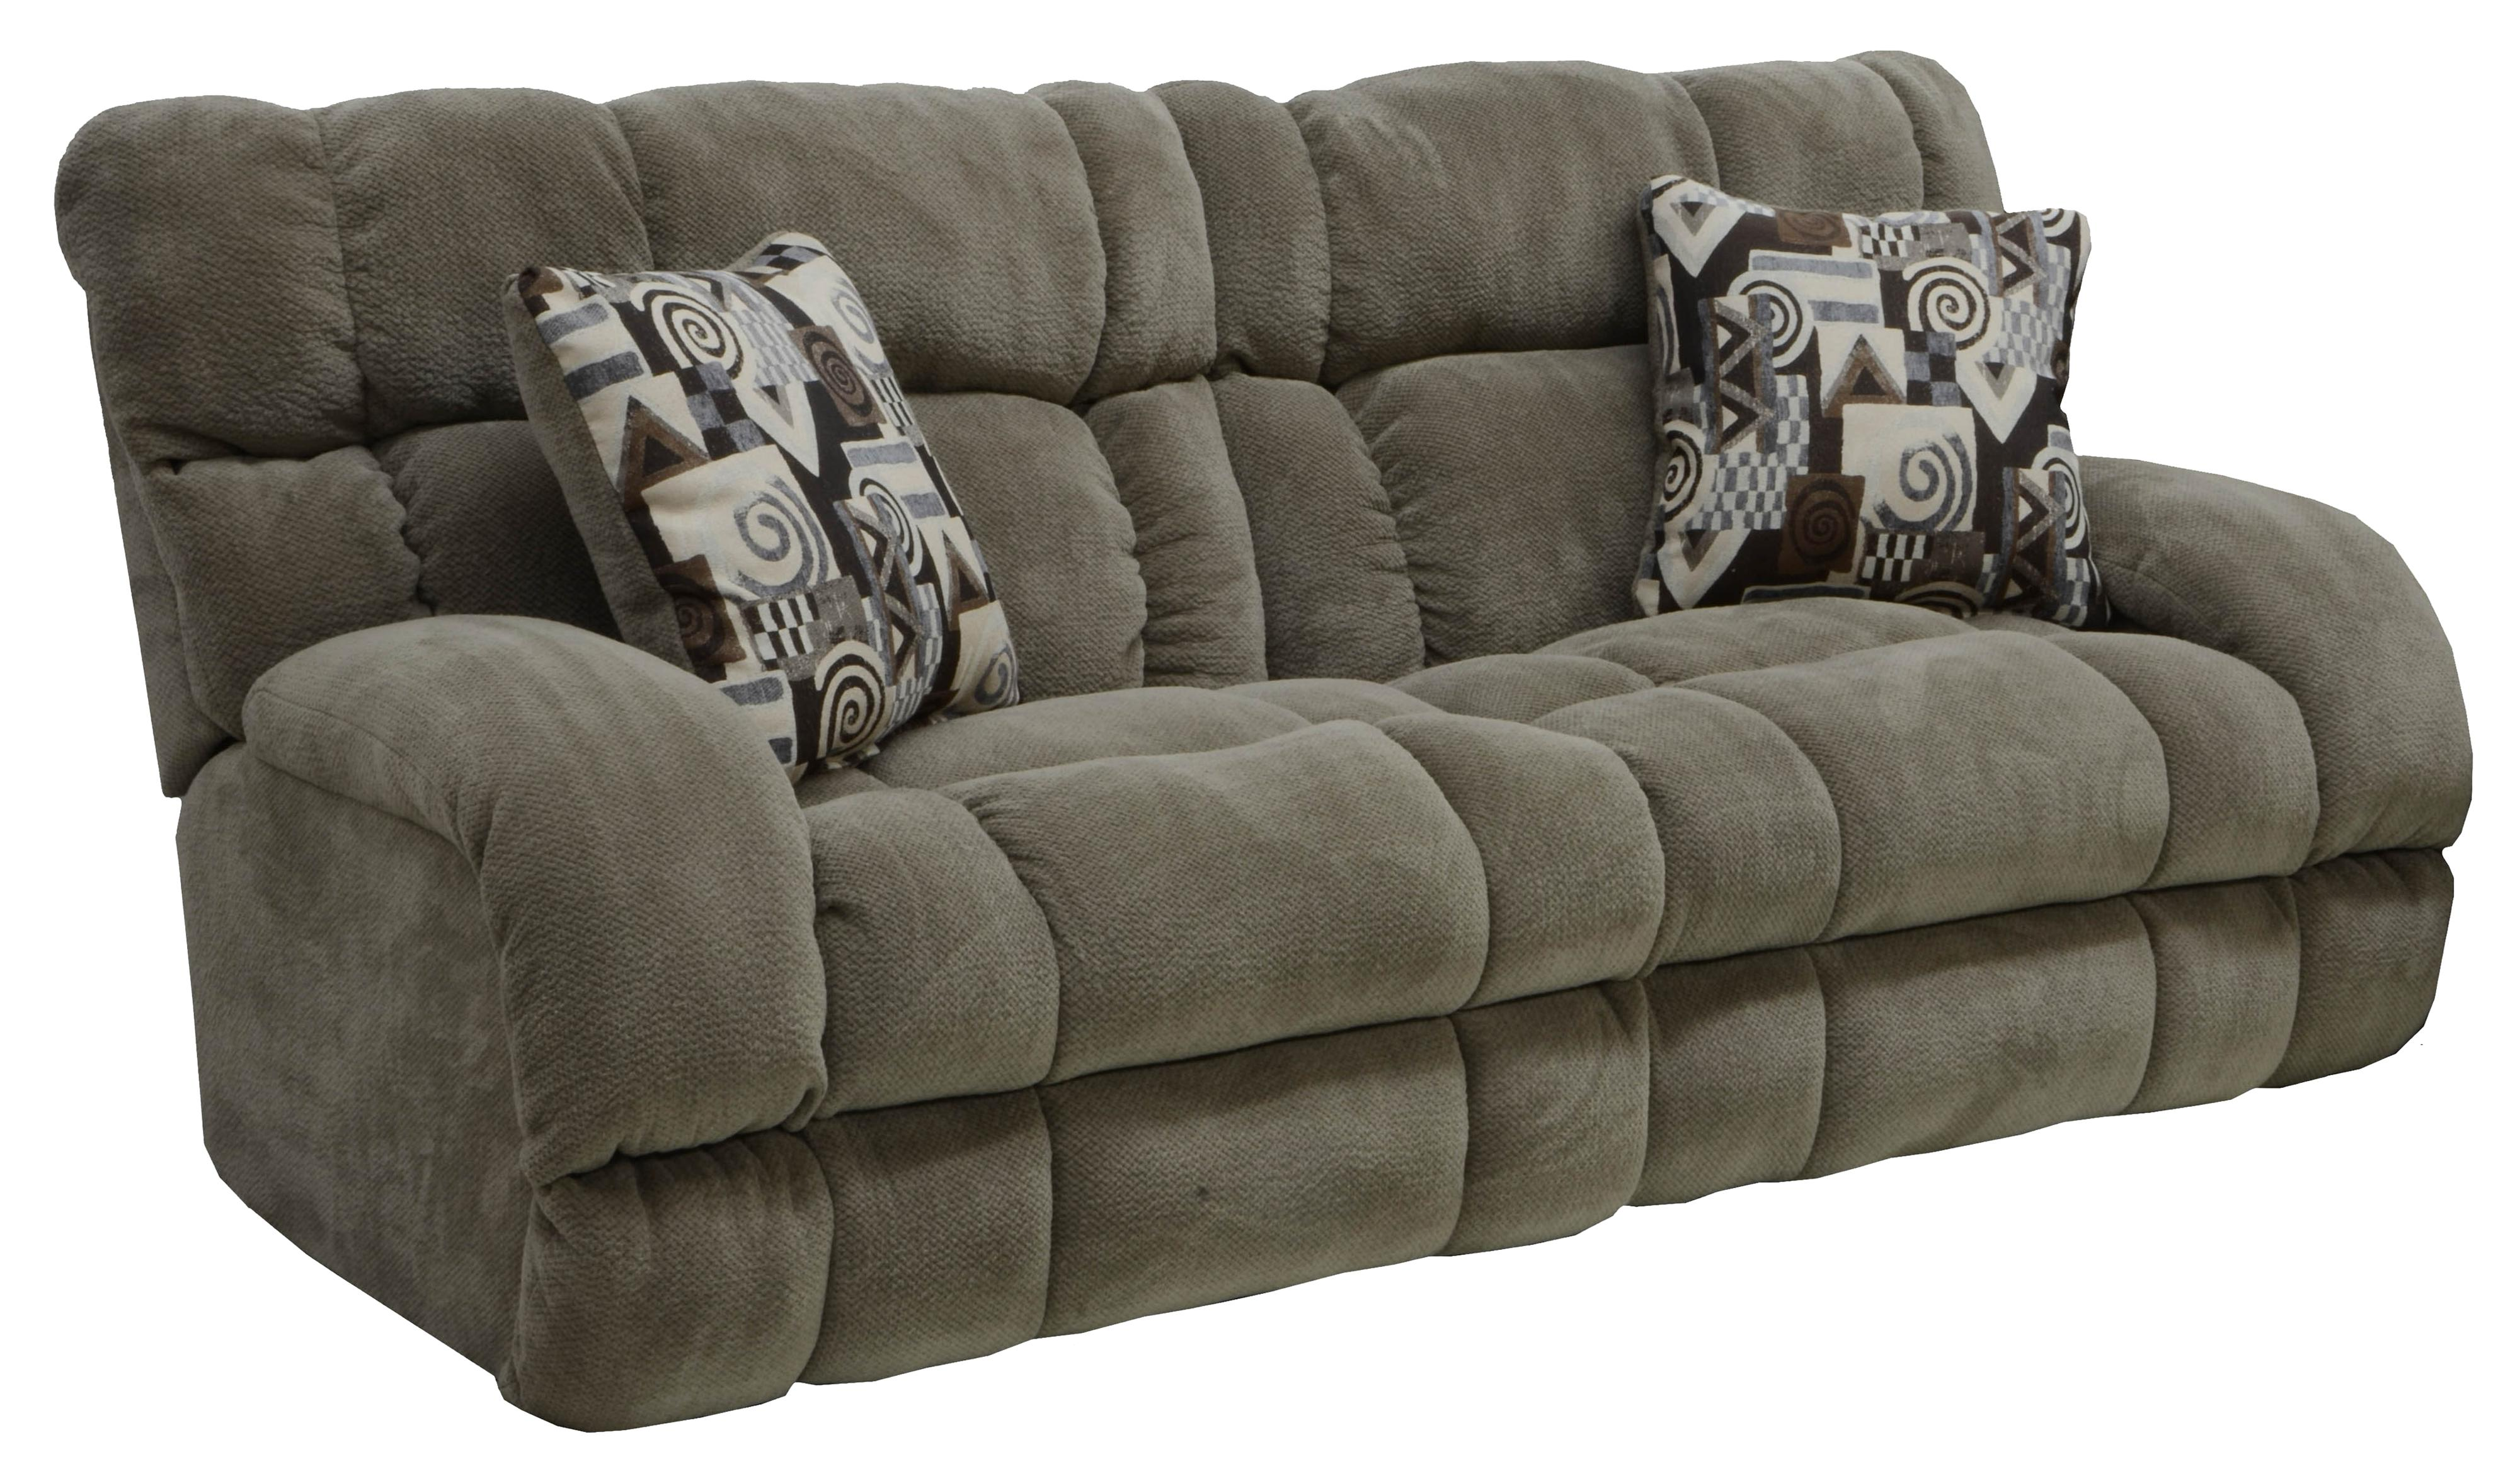 Power lay flat reclining sofa with wide seats by catnapper Power reclining sofas and loveseats